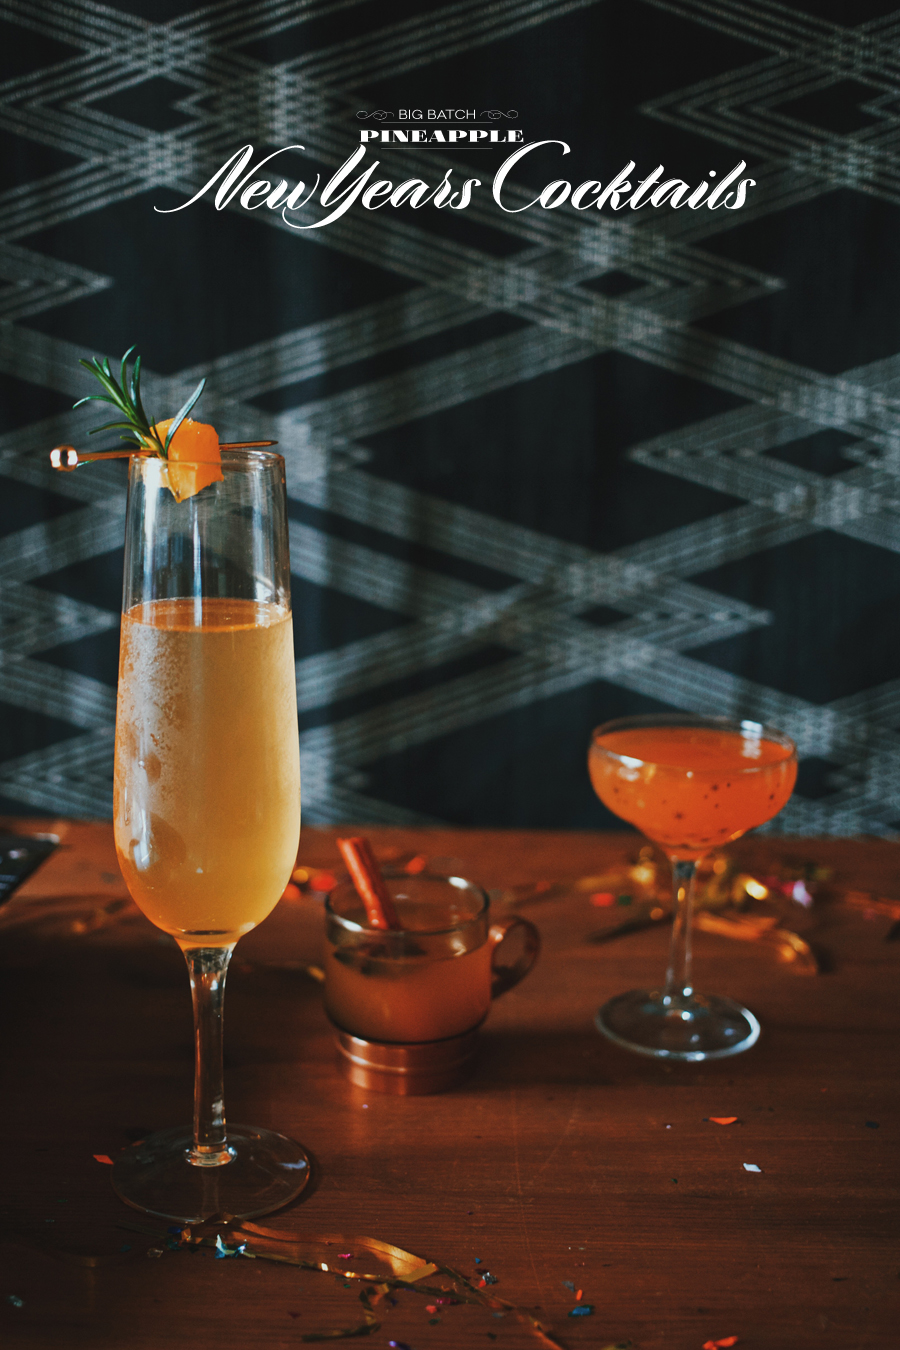 Pineapple Big Batch New Years Cocktails | Dine X Design